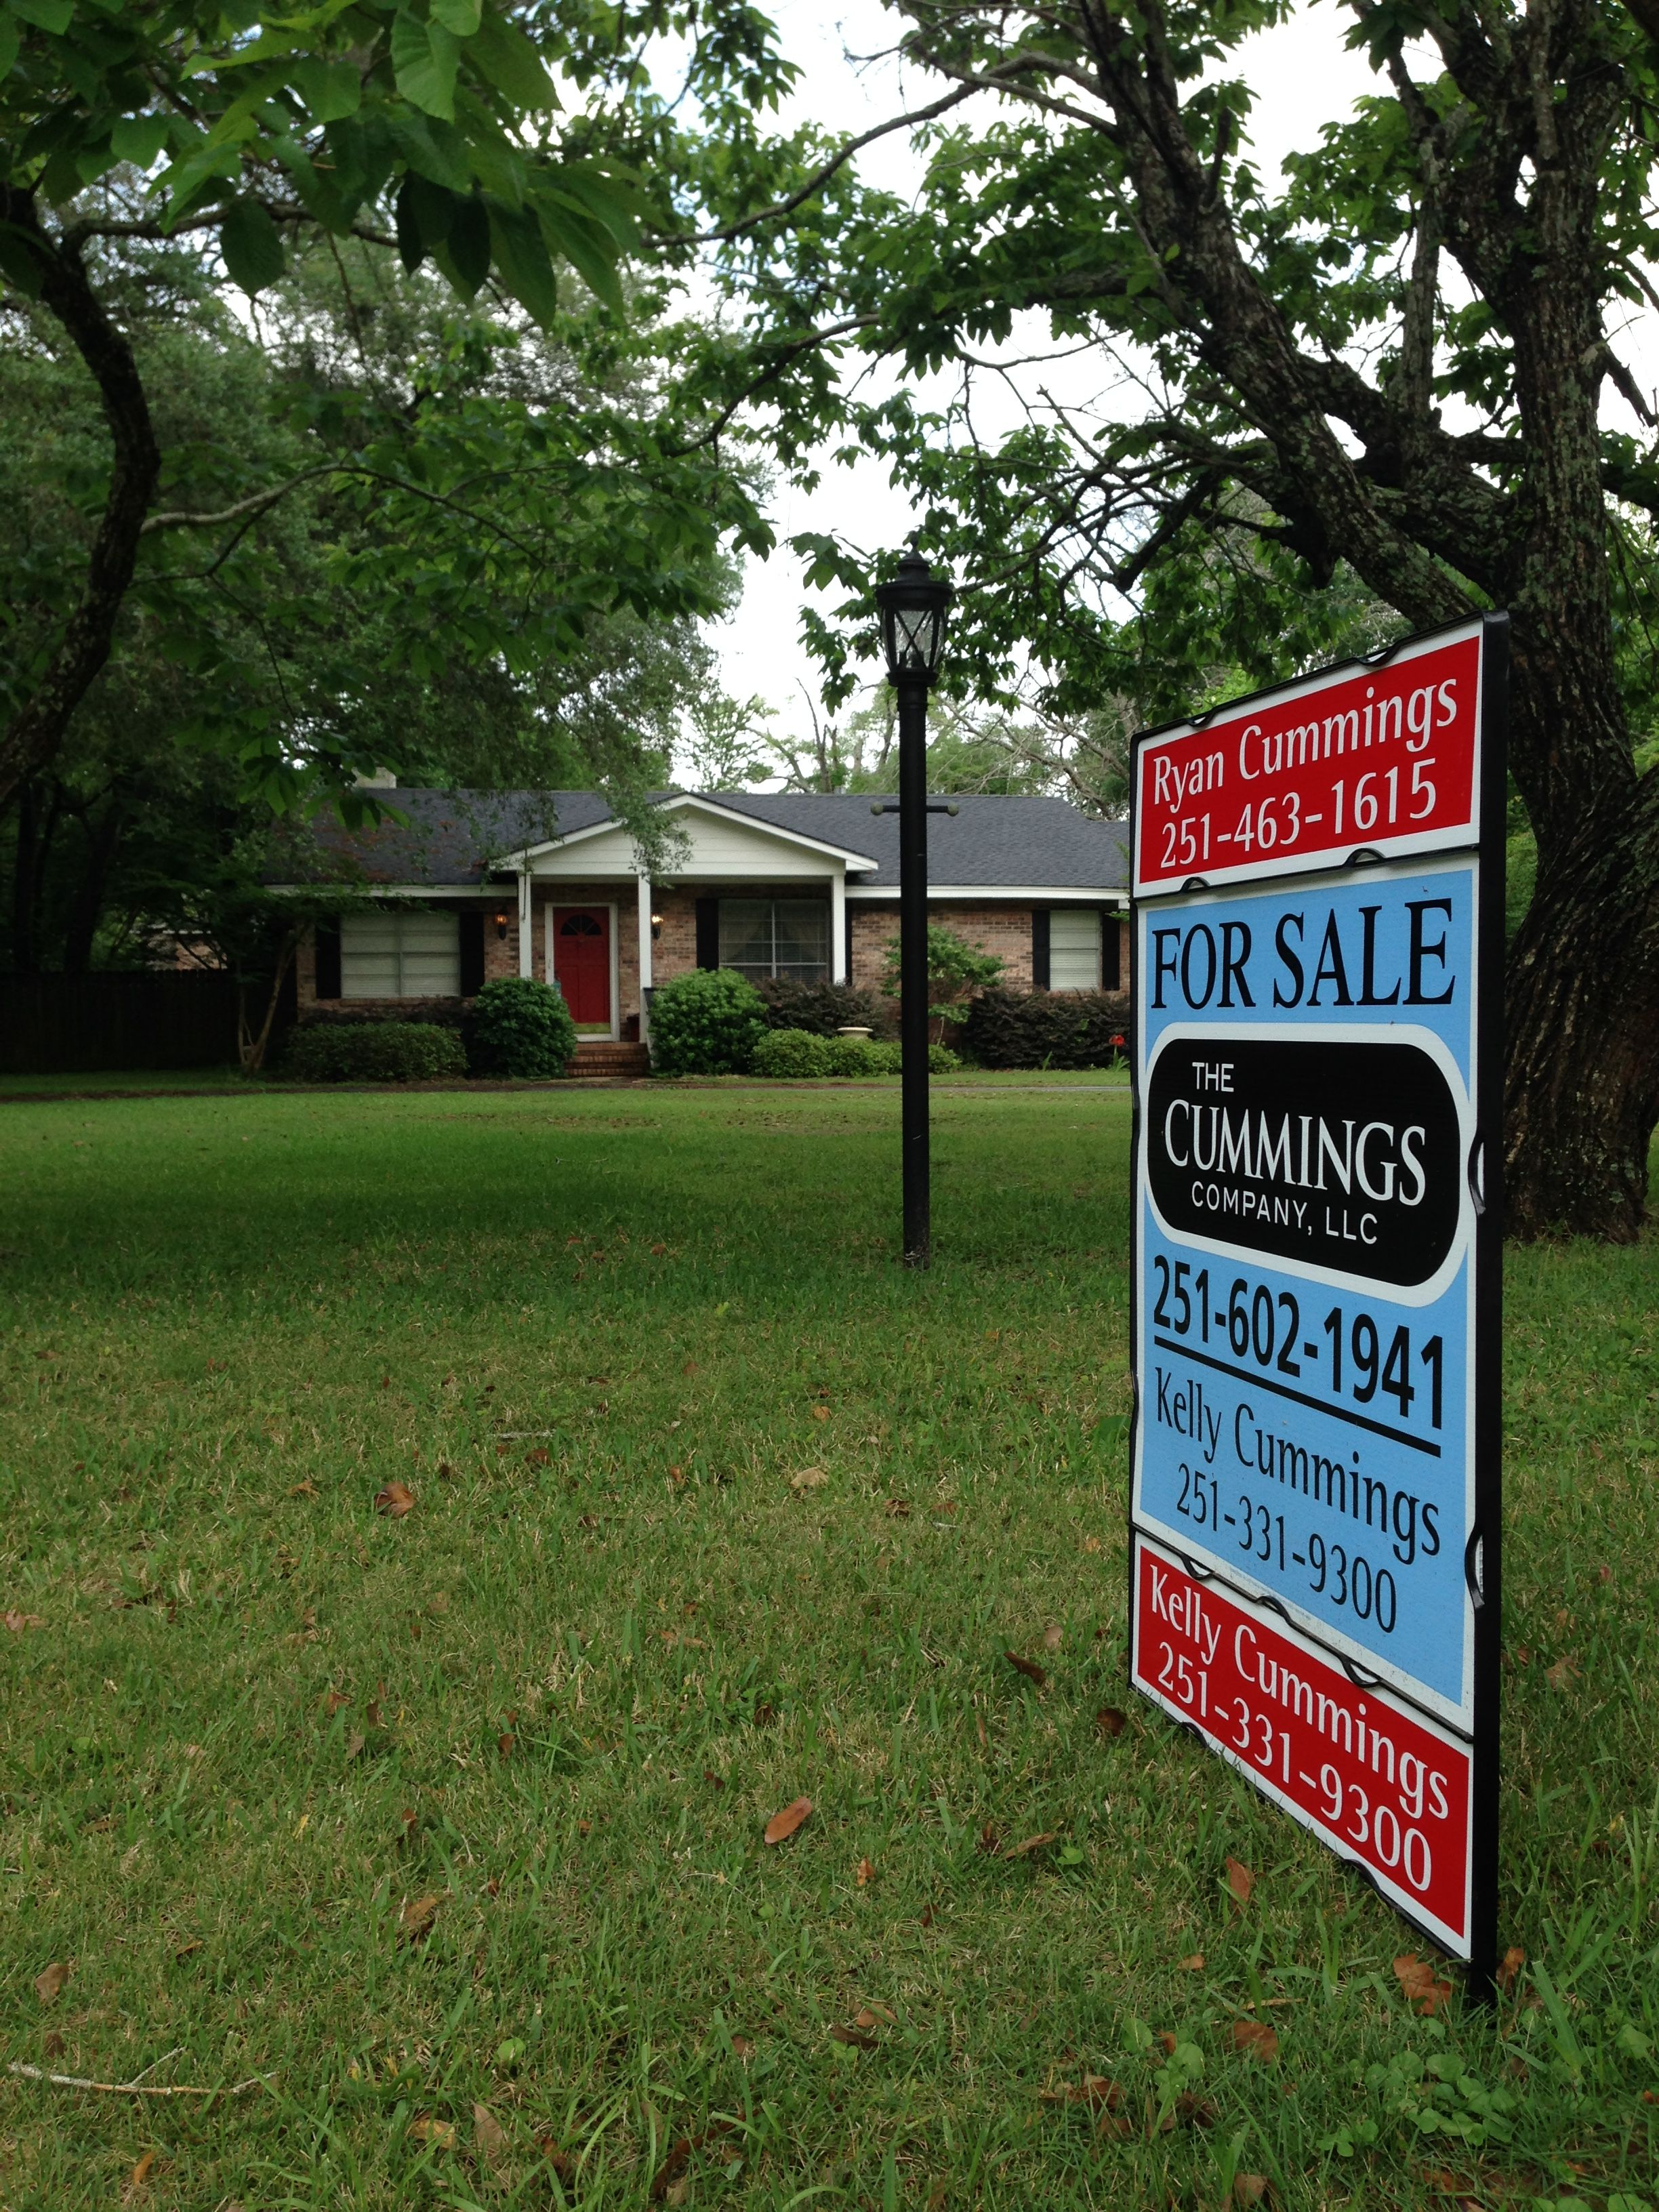 Homes For Sale In Mobile Alabama on homes for rent in alabama, mobile alabama houses, repo mobile homes in alabama, dr little mobile alabama, mobile home remodeling, mobile alabama historic homes, modular homes in alabama,